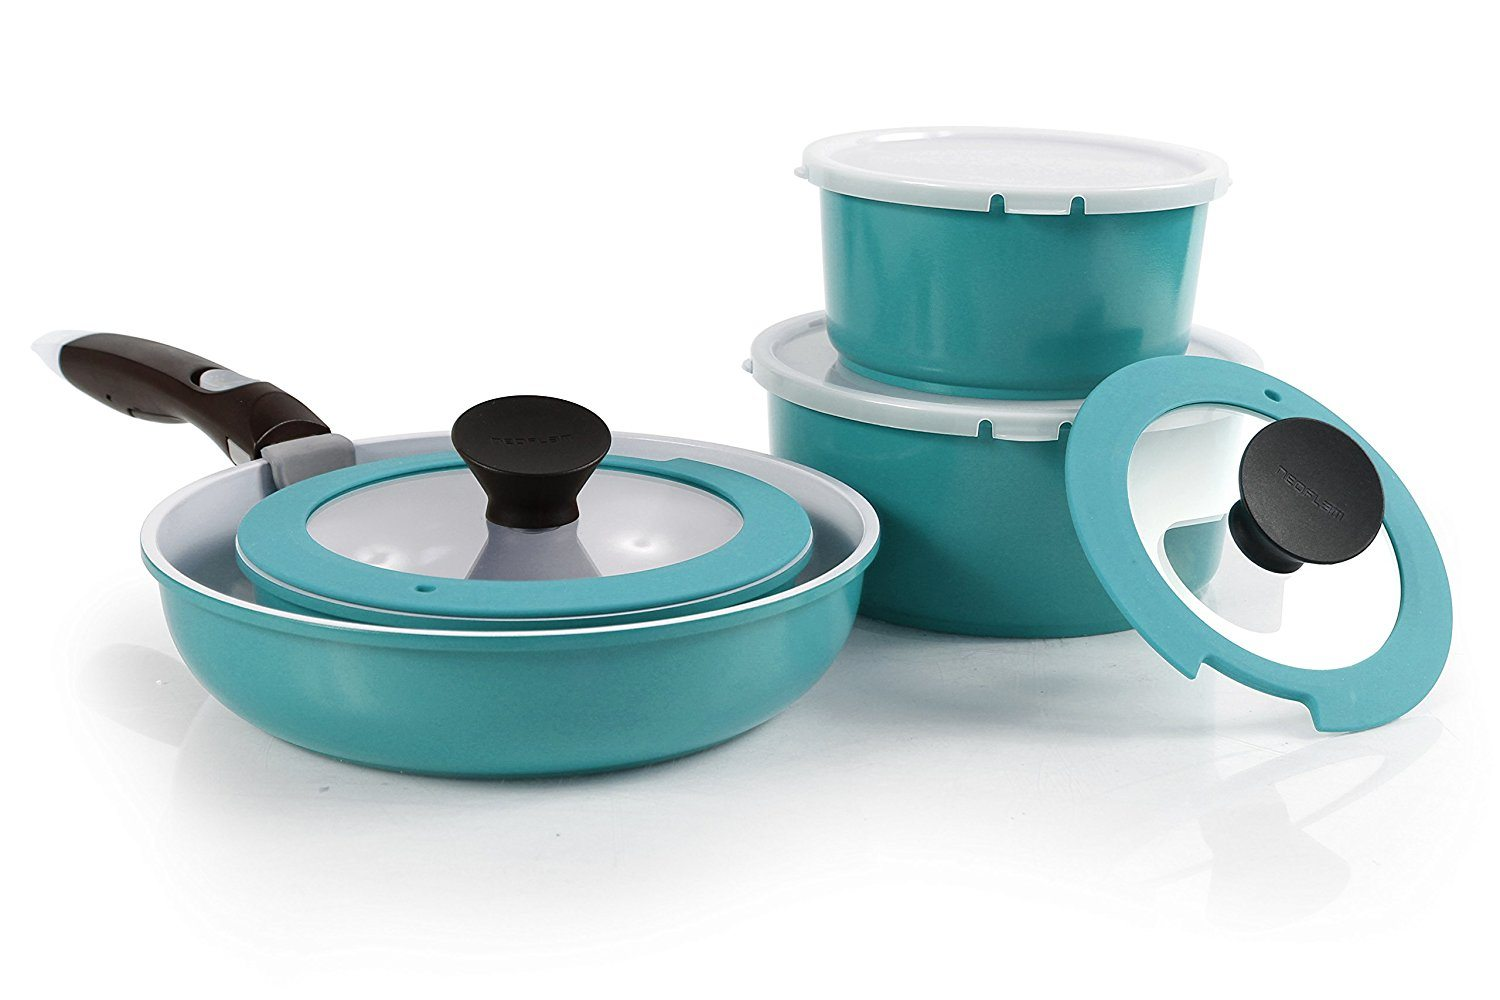 Stackable Pots And Pans Sets Simplemost